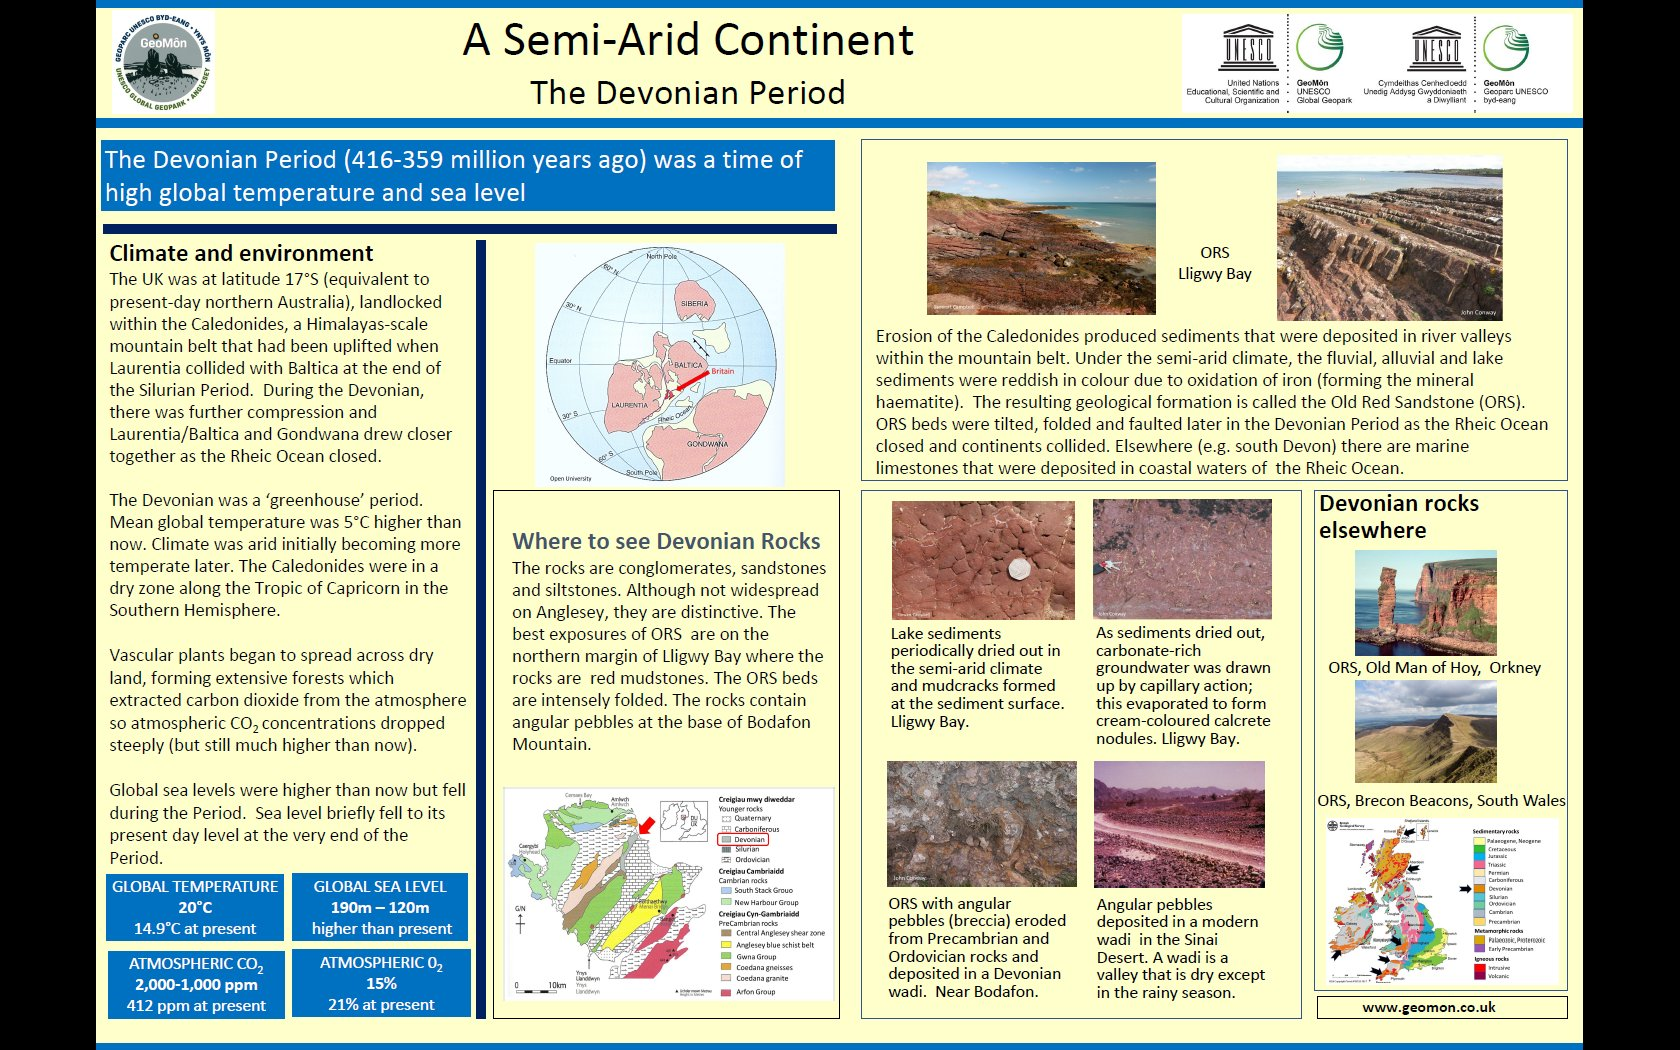 Poster showing geological conditions and climate in Devonian times